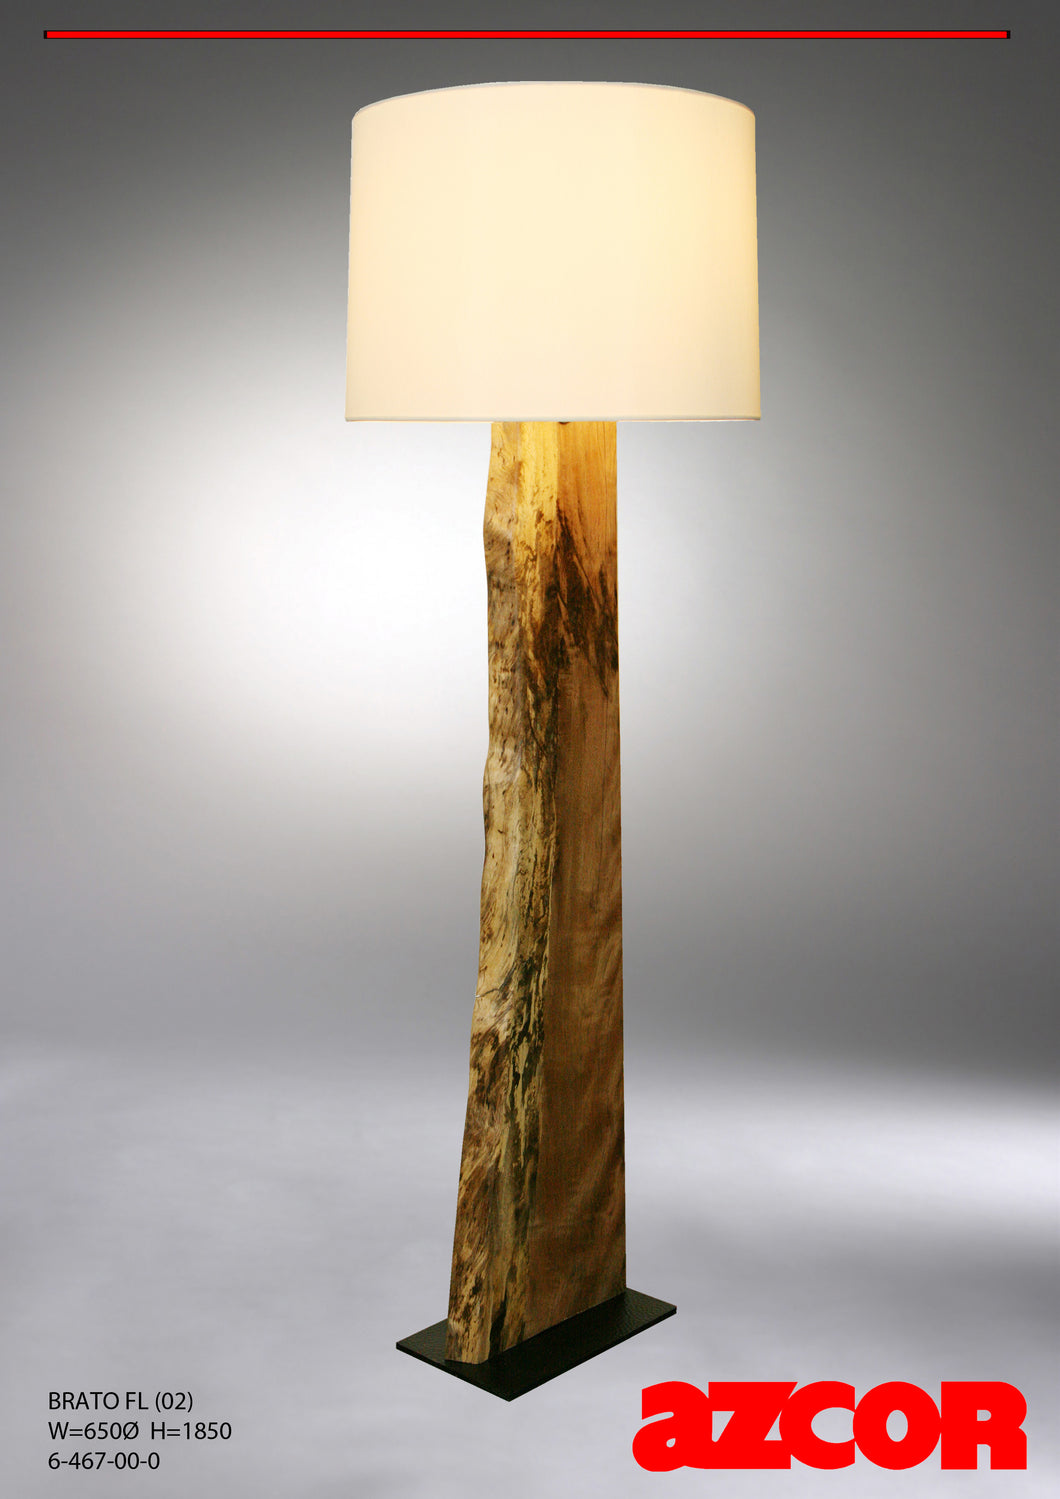 Brato Floor Lamp